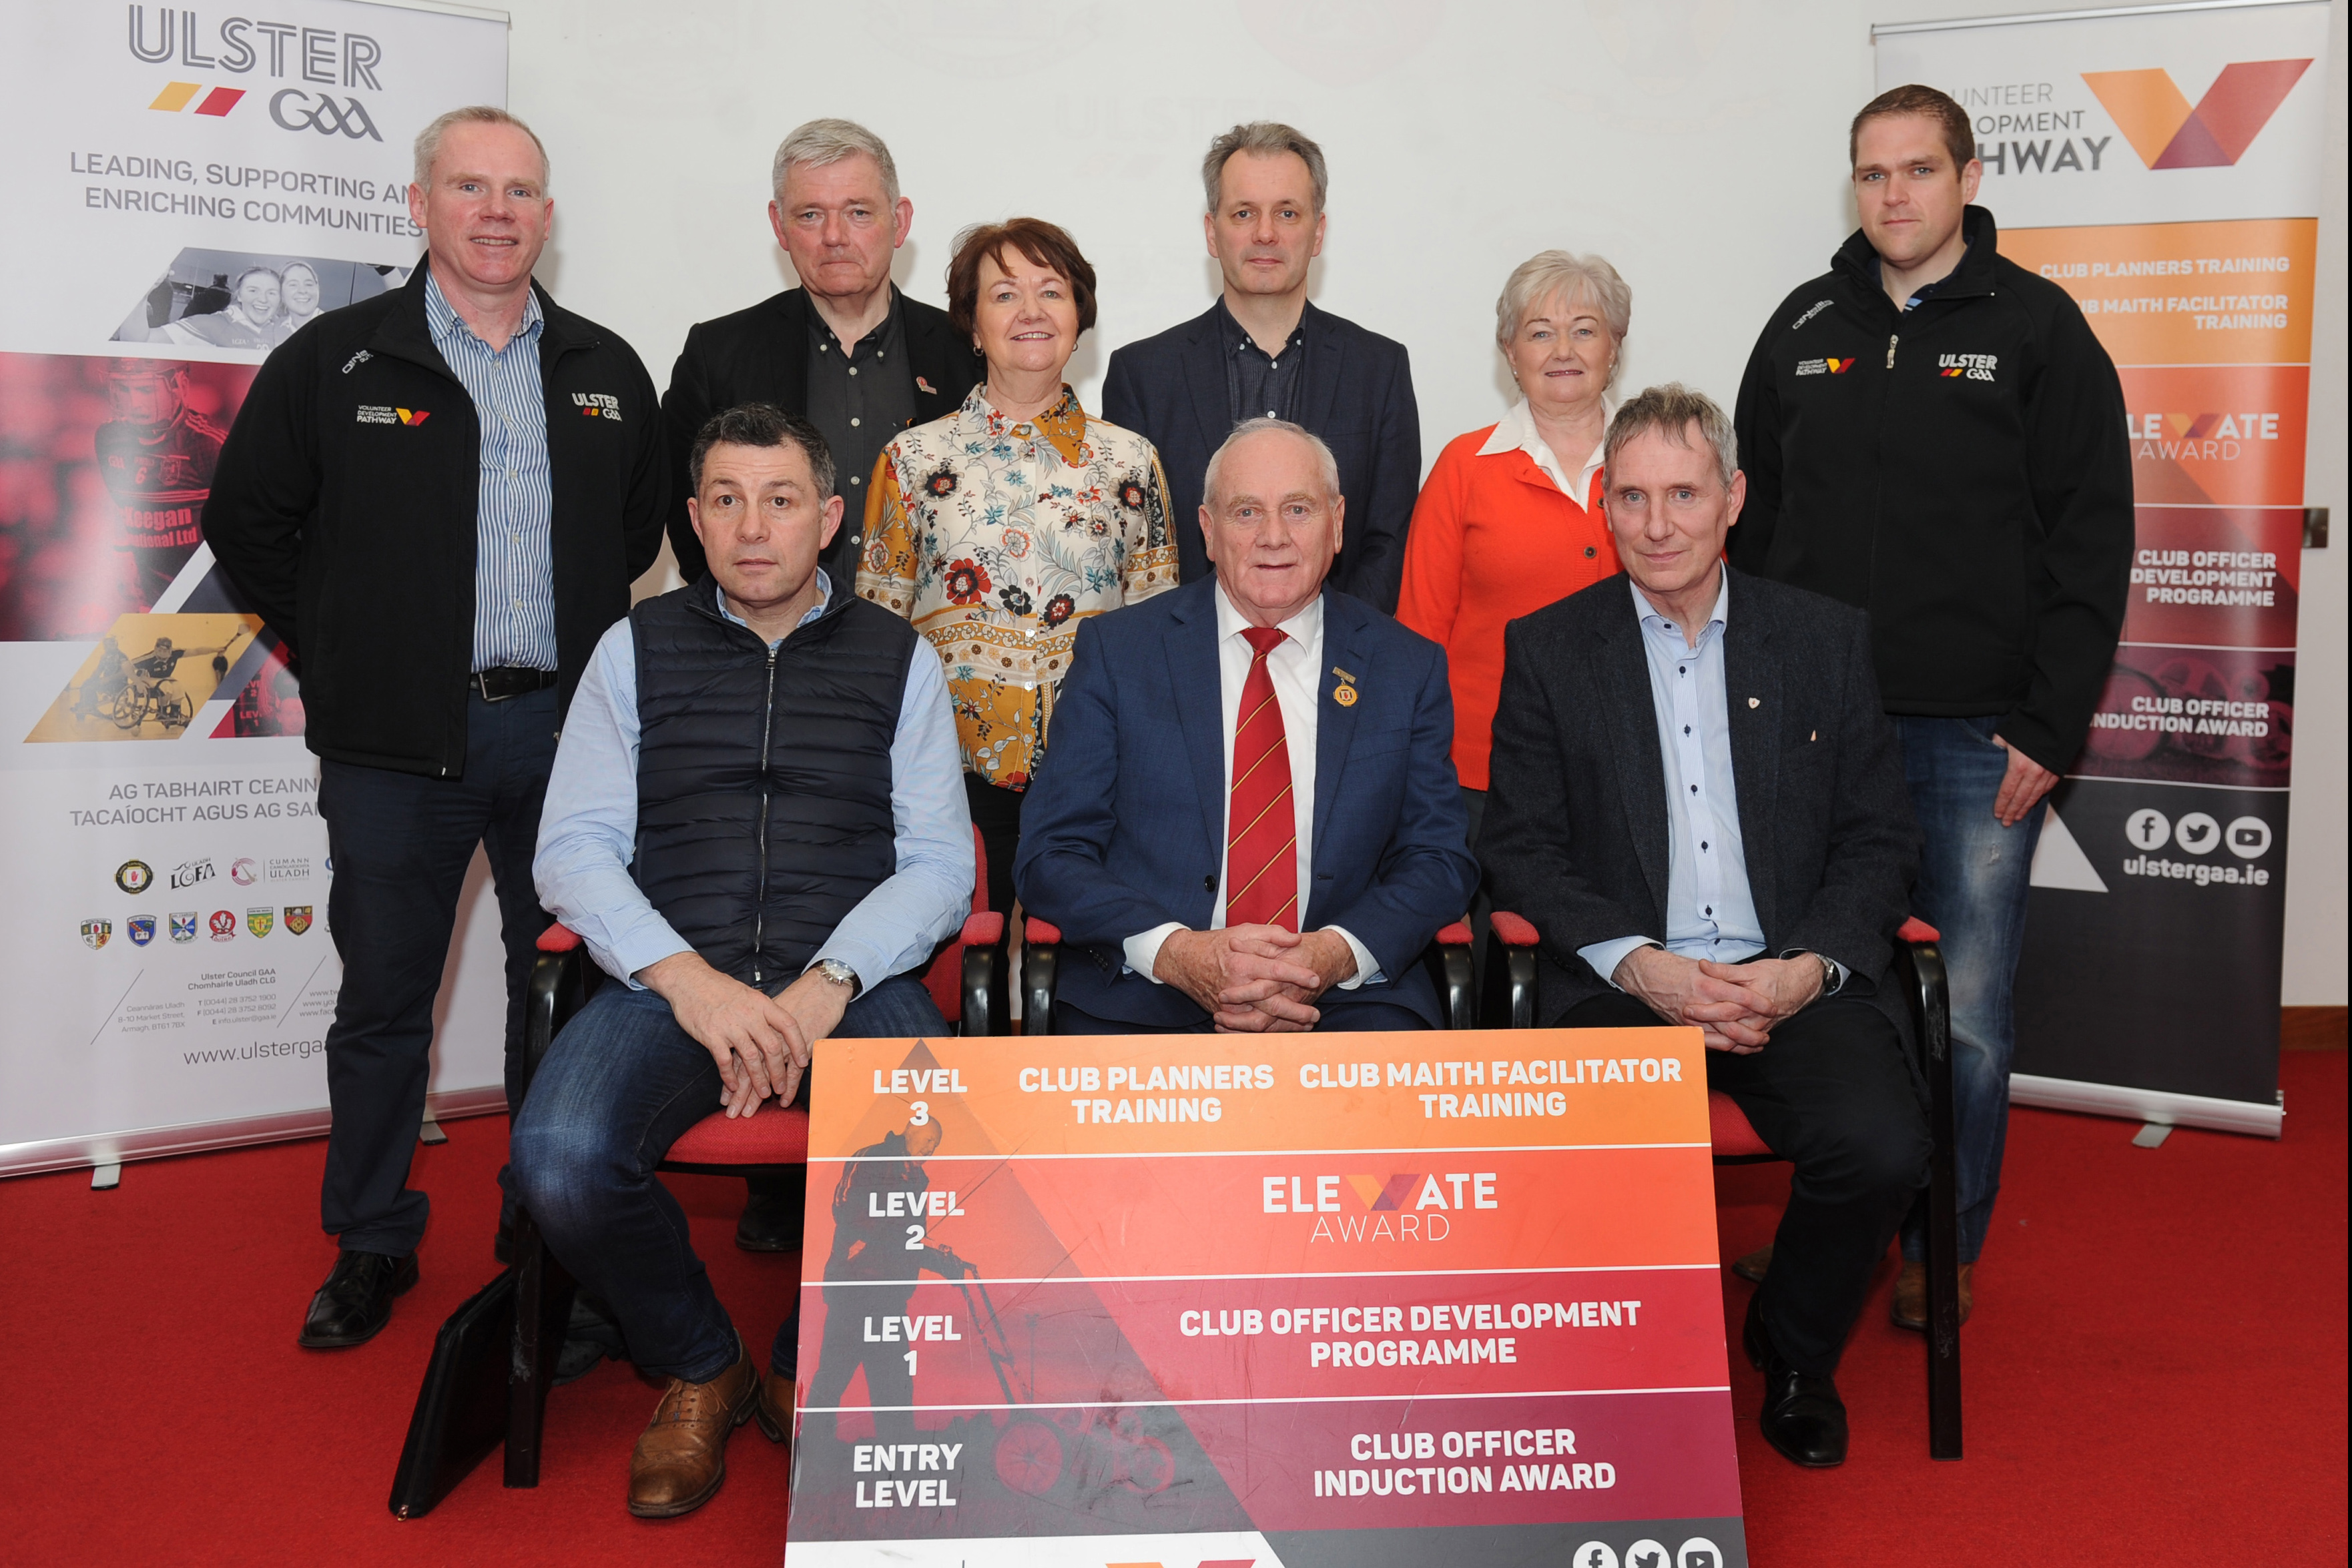 Magnificent Seven clubs achieve Elevate Award